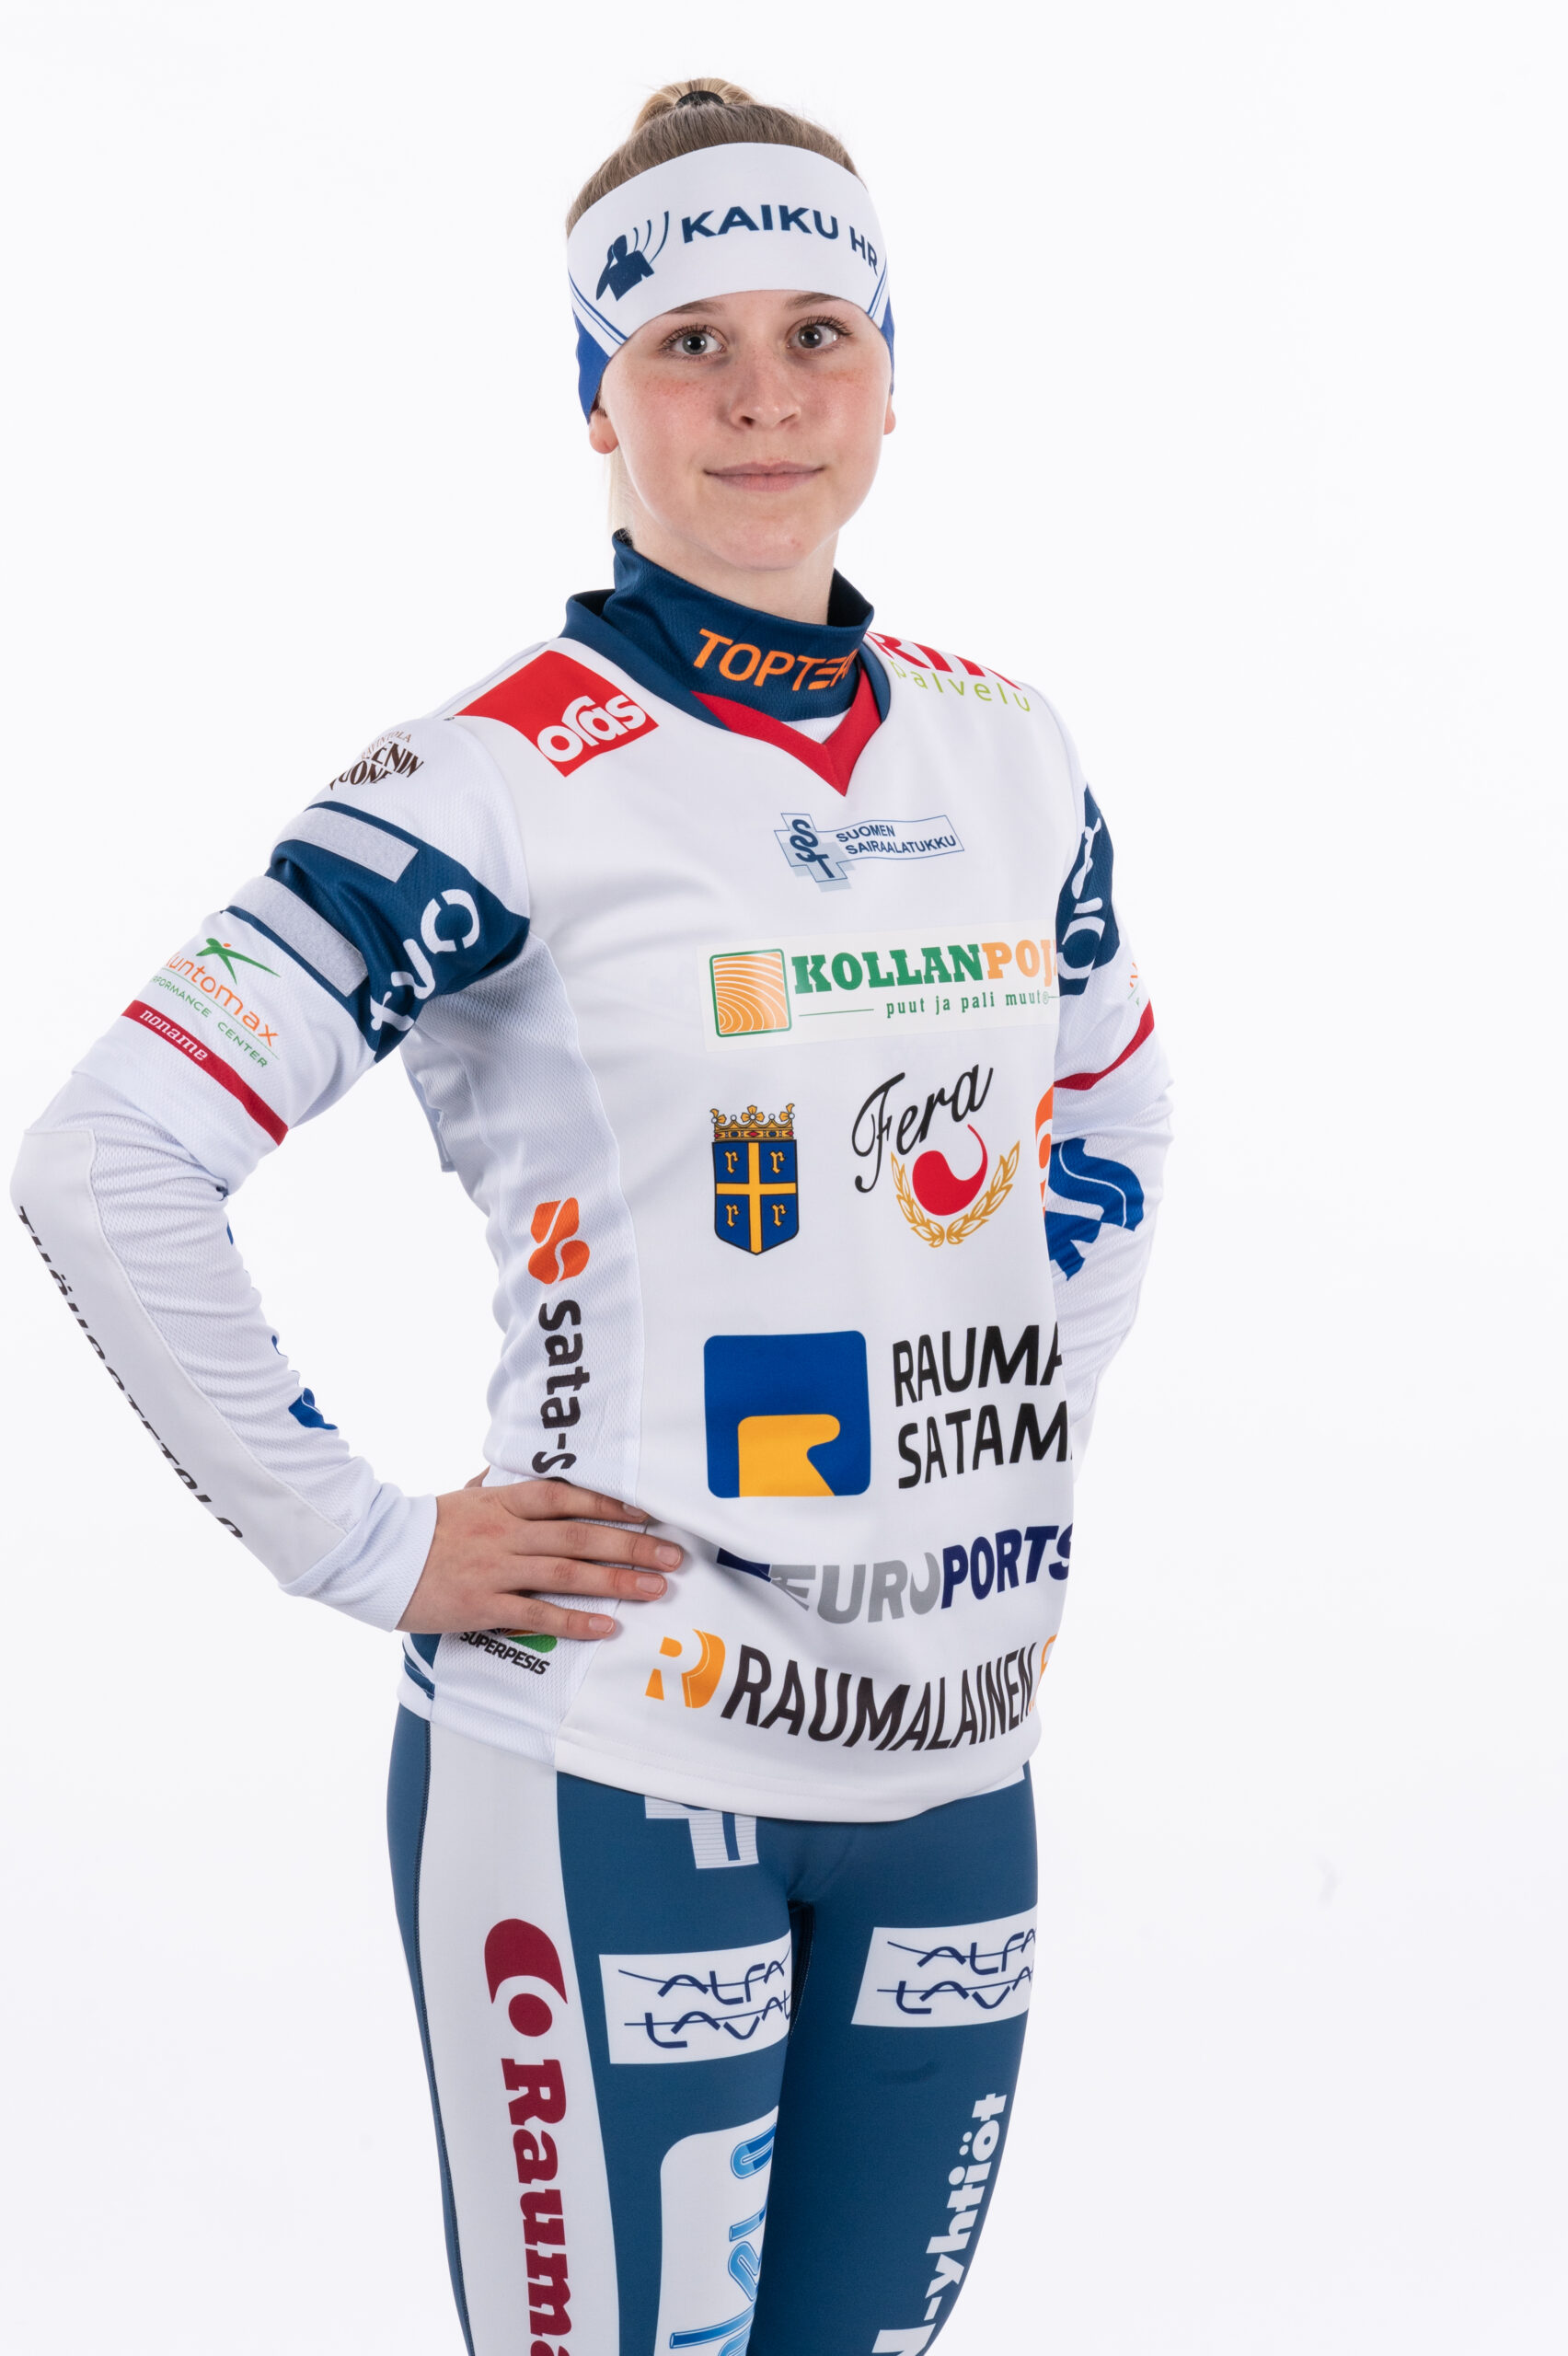 Lotta Lindroos